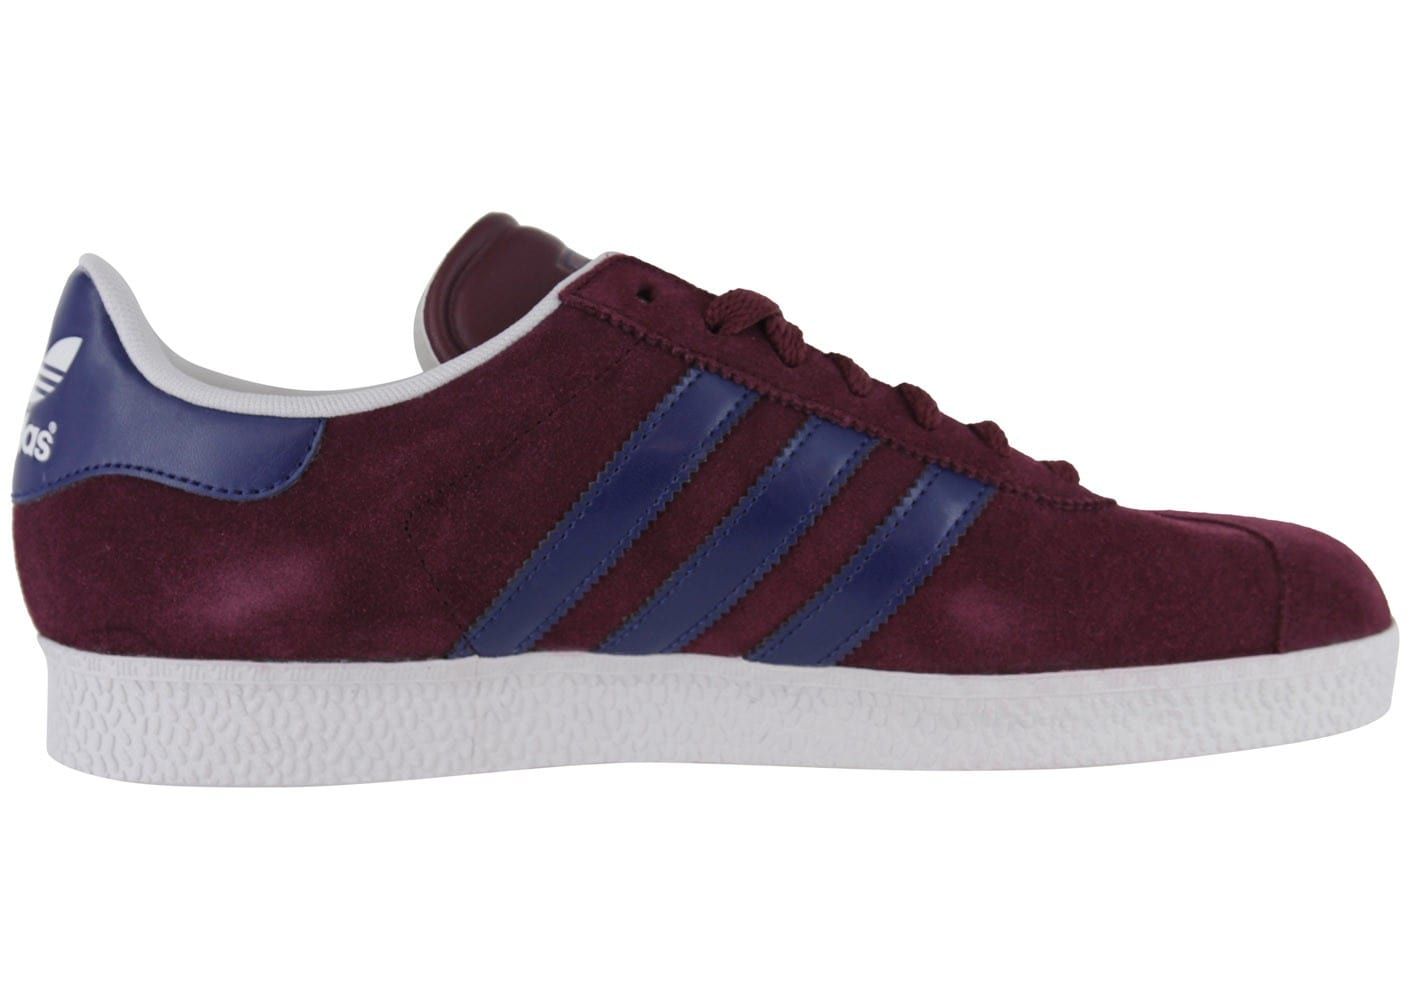 Chaussures Homme Gazelle 2